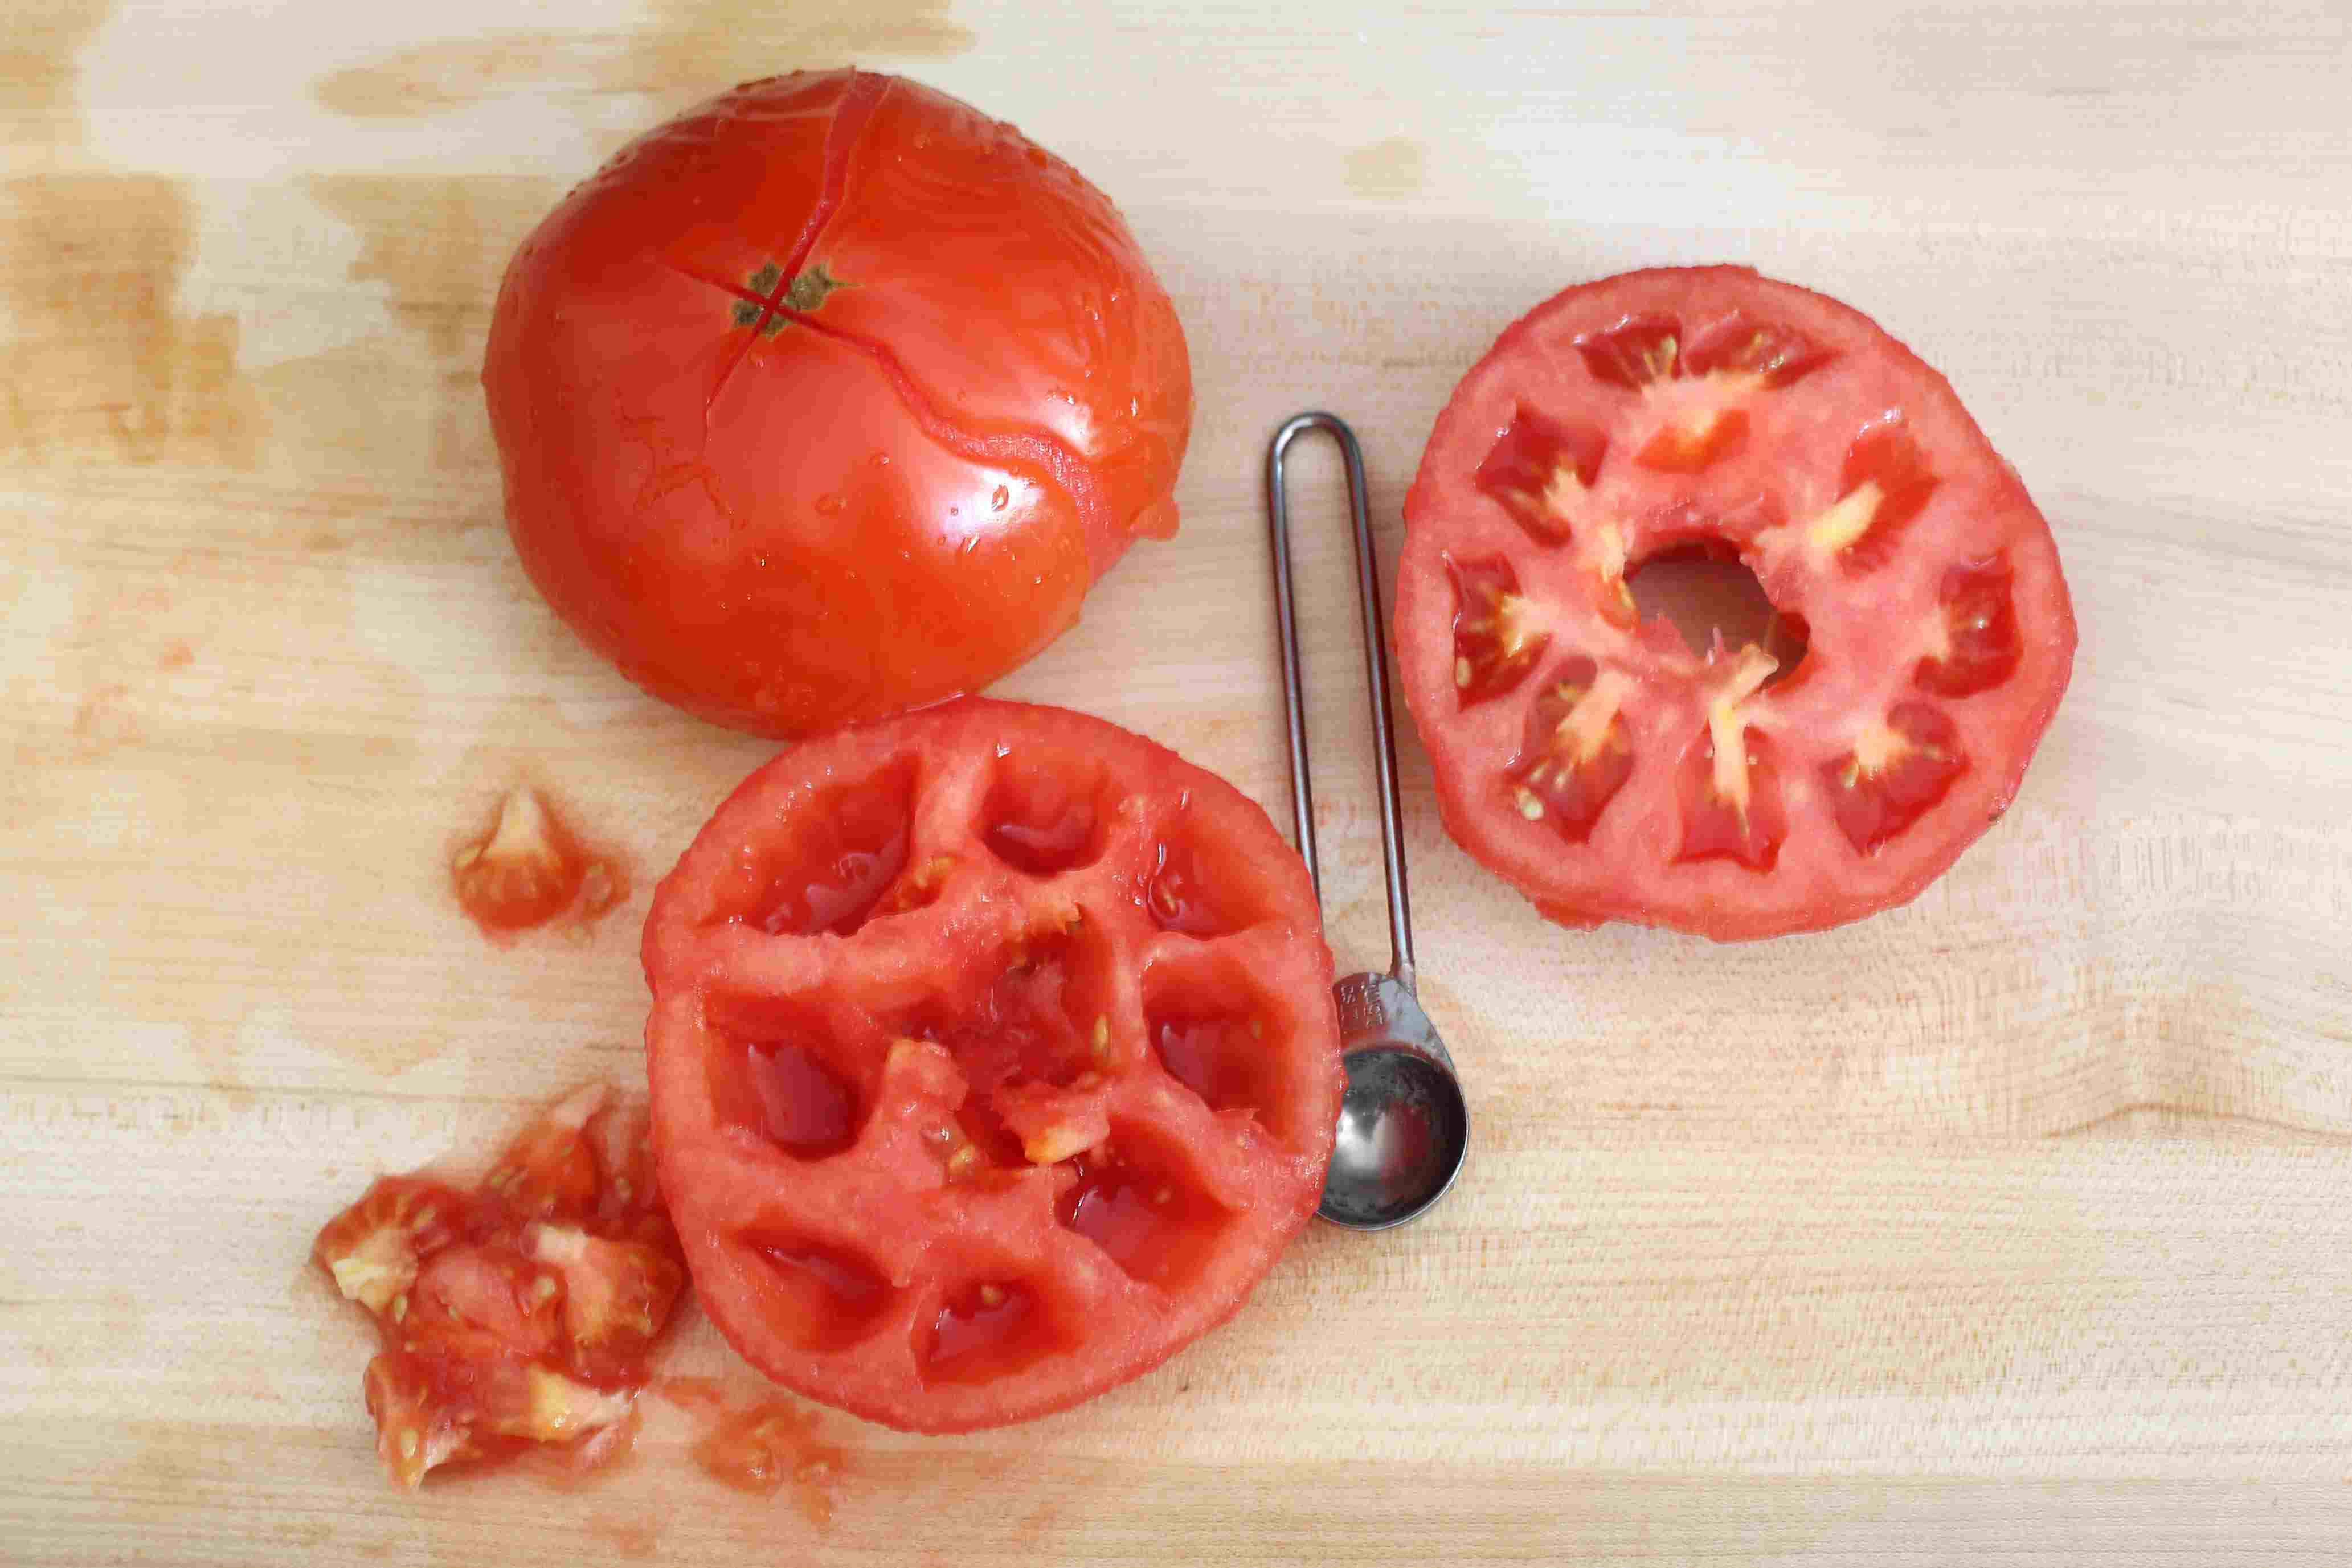 Tomatoes and scooper